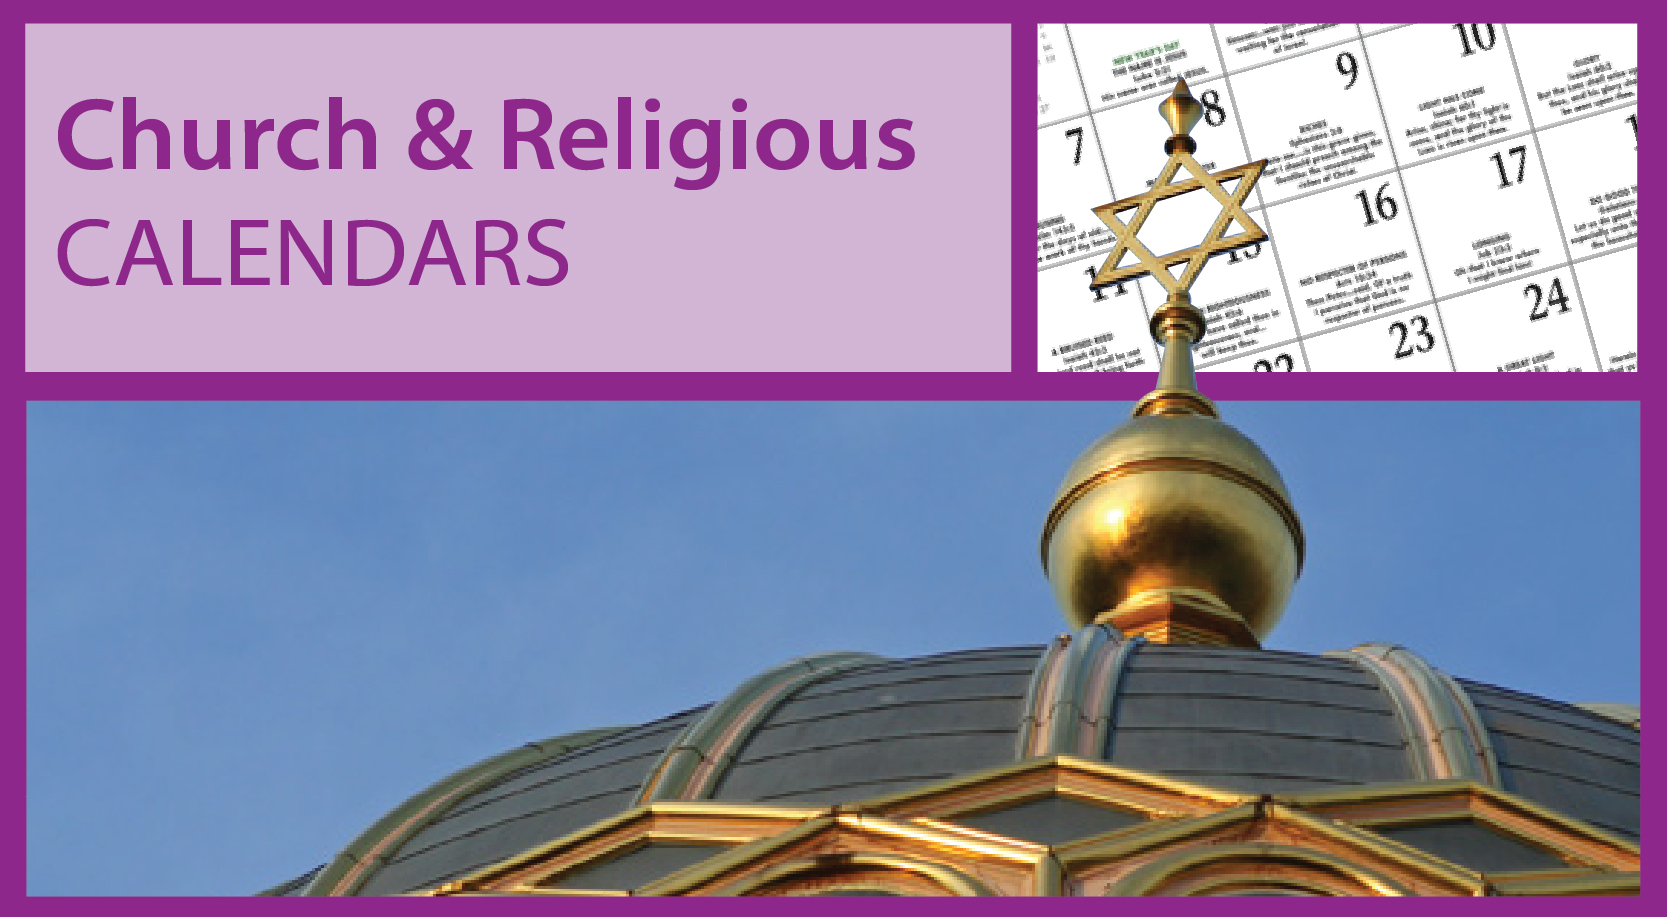 Religious Calendars for Business | Jewish Calendars | Catholic Church Calendars